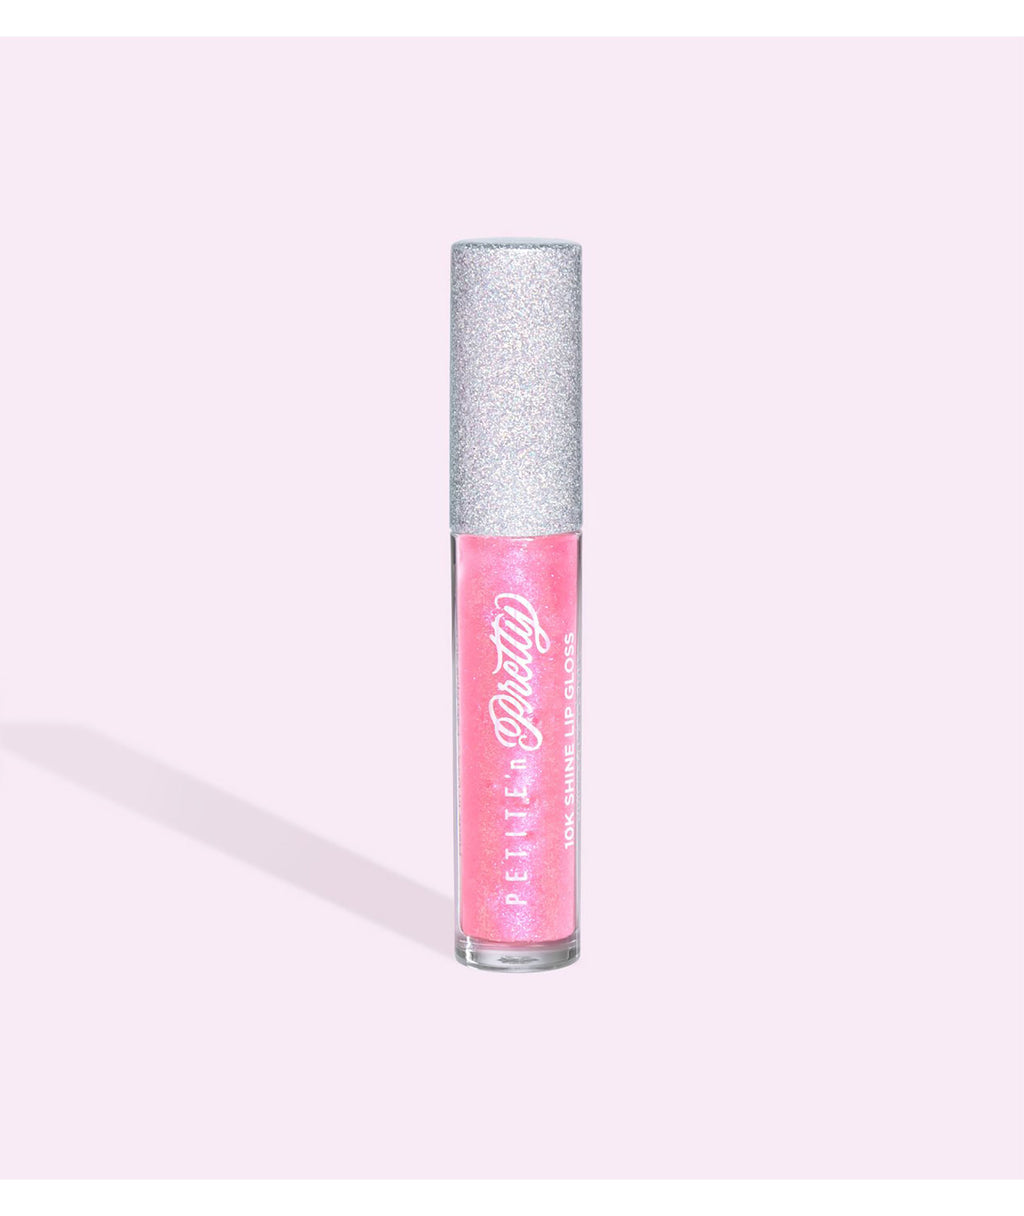 Petite 'n Pretty Pink Pact Deluxe 10K Shine Lip Gloss